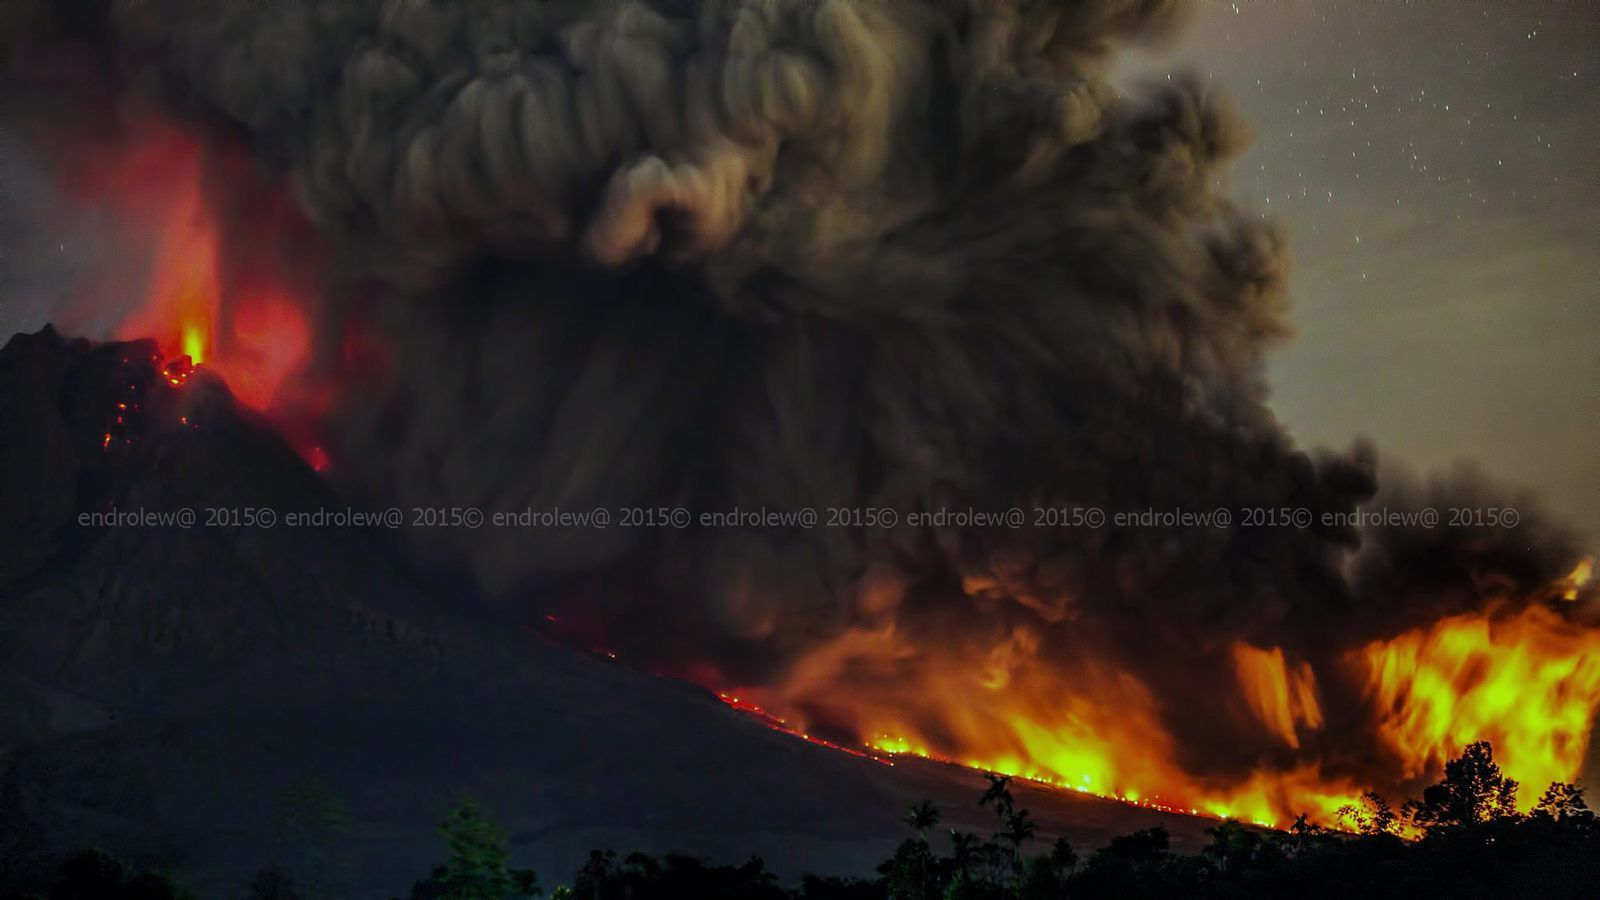 Sinabung - 28.06.2015 / 2h39 & 2h40 - photos endrolew@